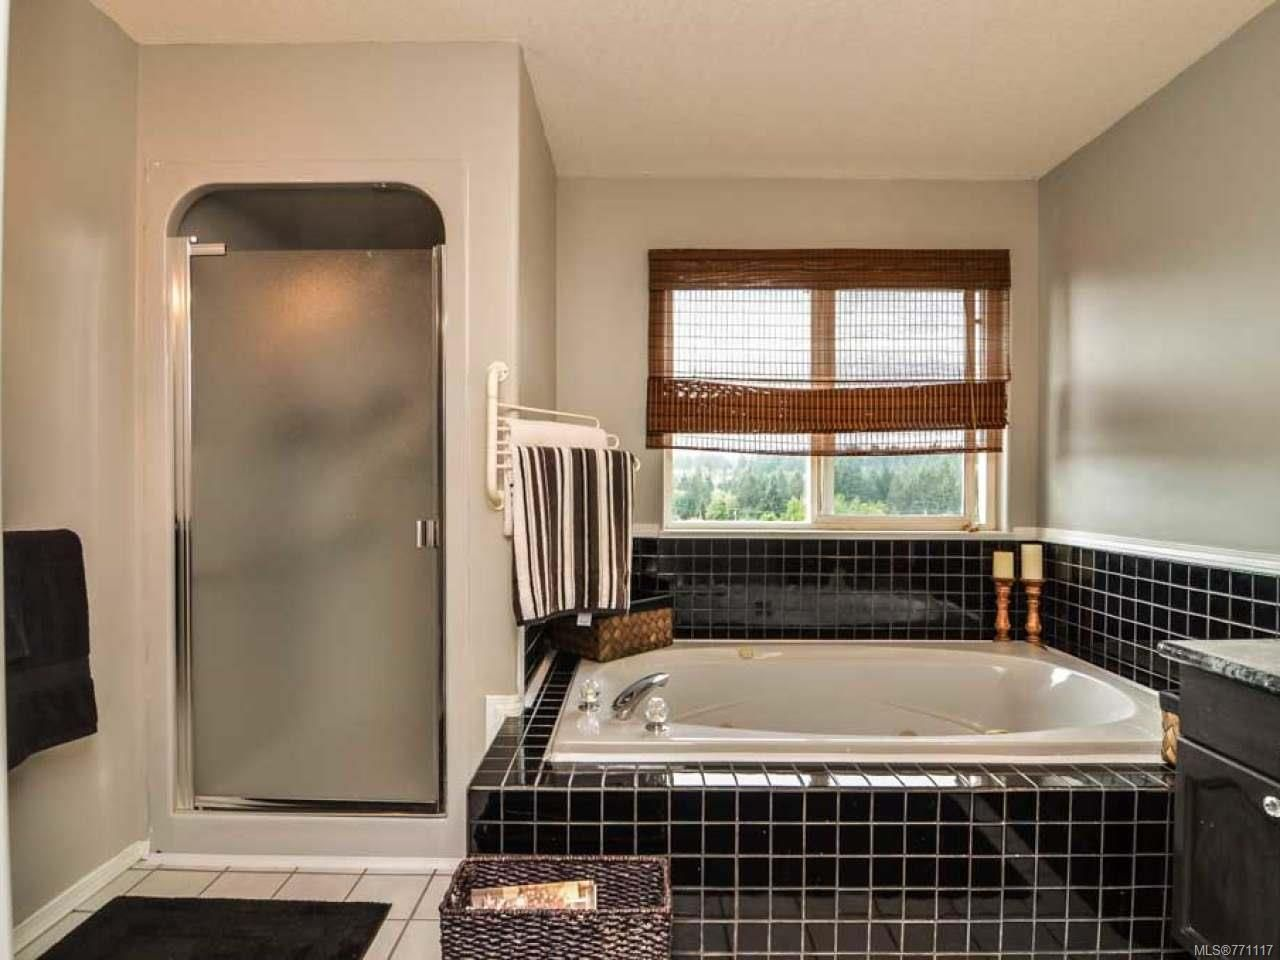 Photo 30: Photos: 697 Steenbuck Dr in CAMPBELL RIVER: CR Campbell River Central House for sale (Campbell River)  : MLS®# 771117